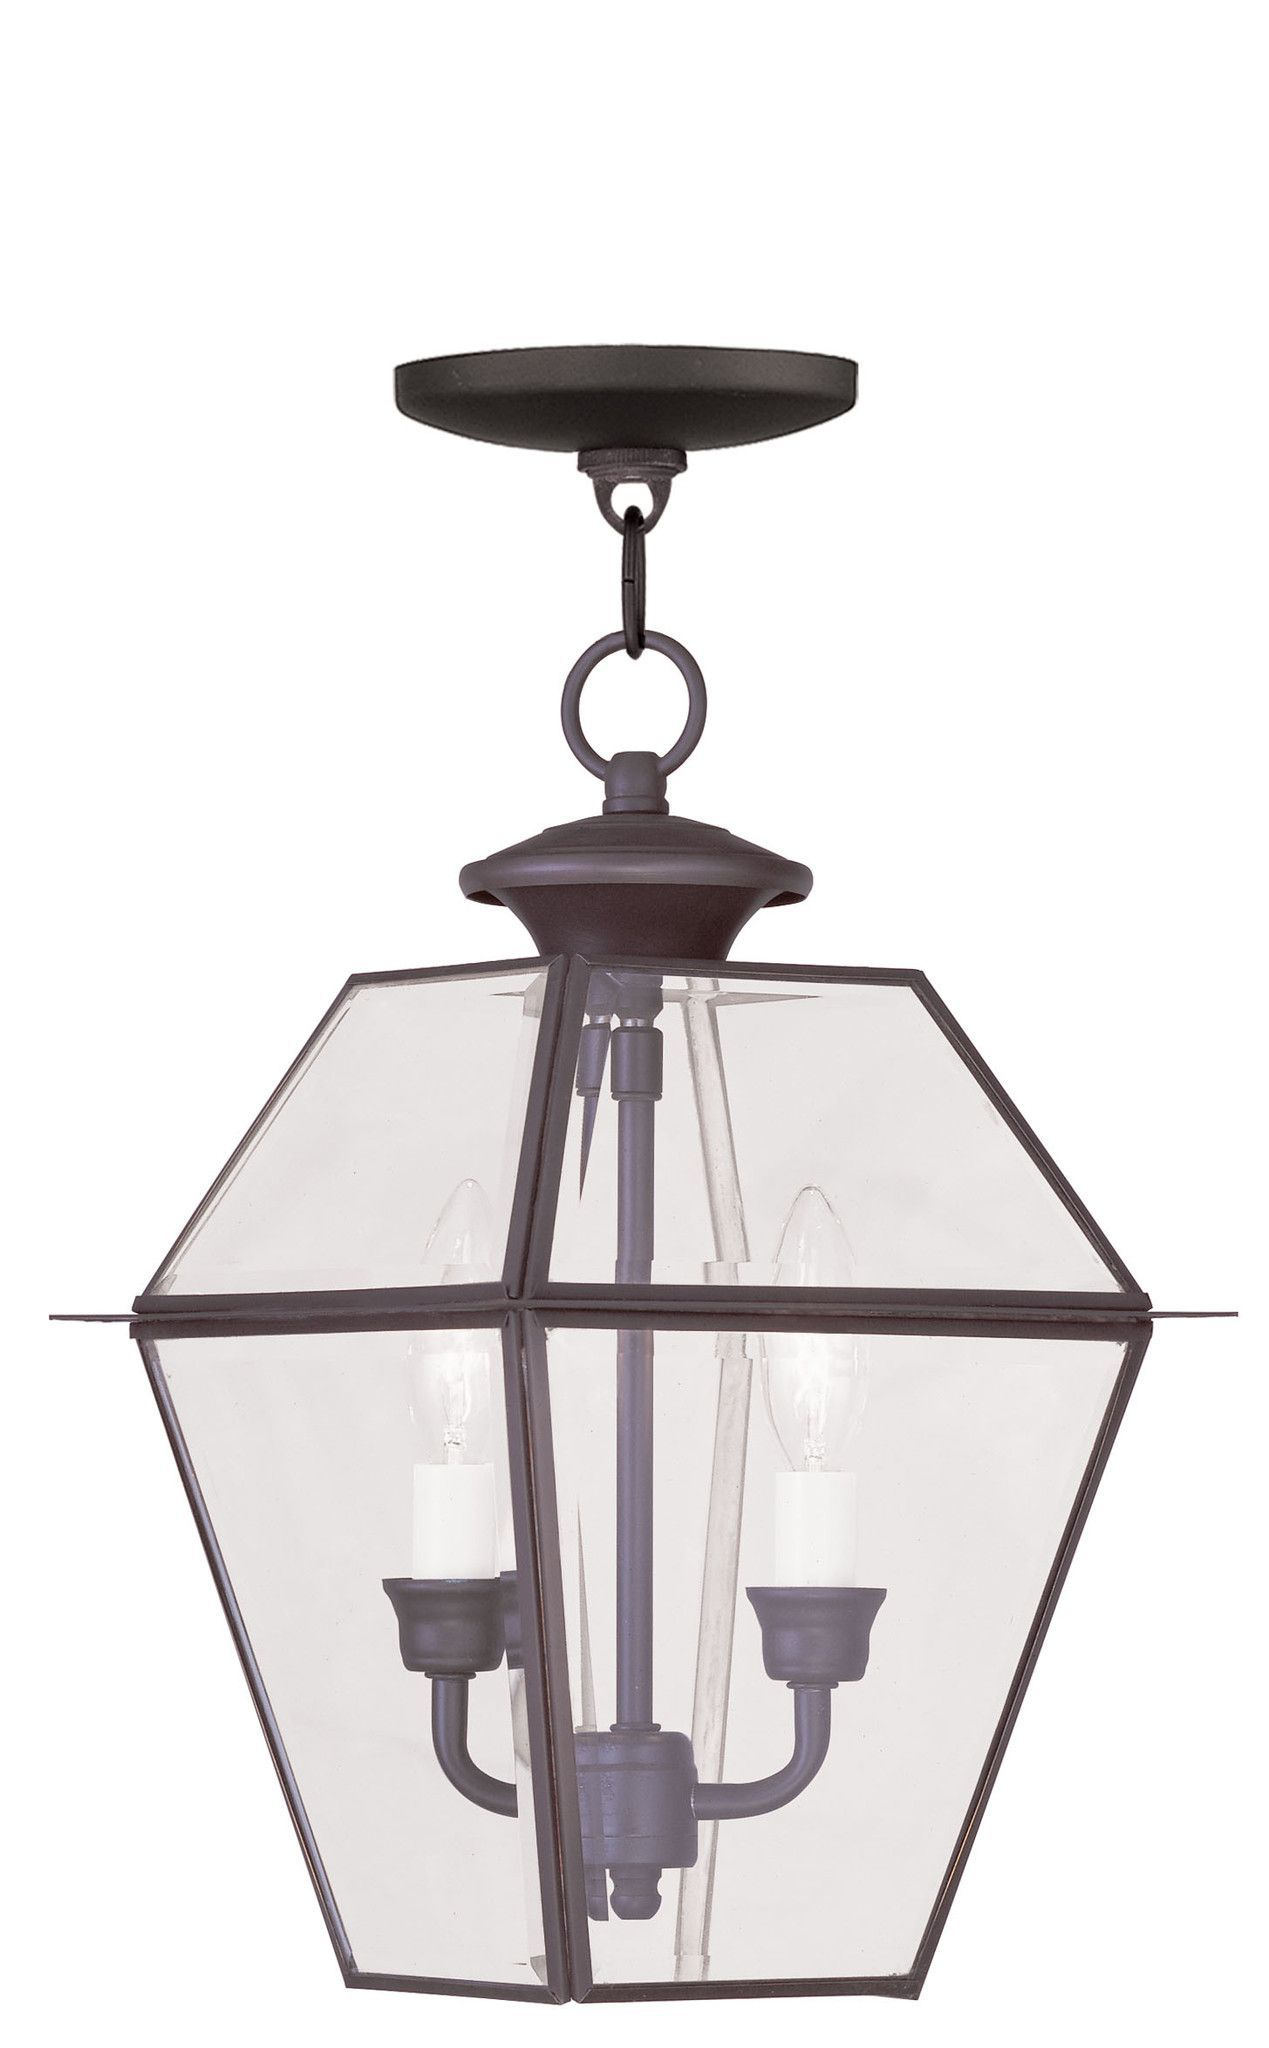 Livex lighting westover outdoor pendant bronze products